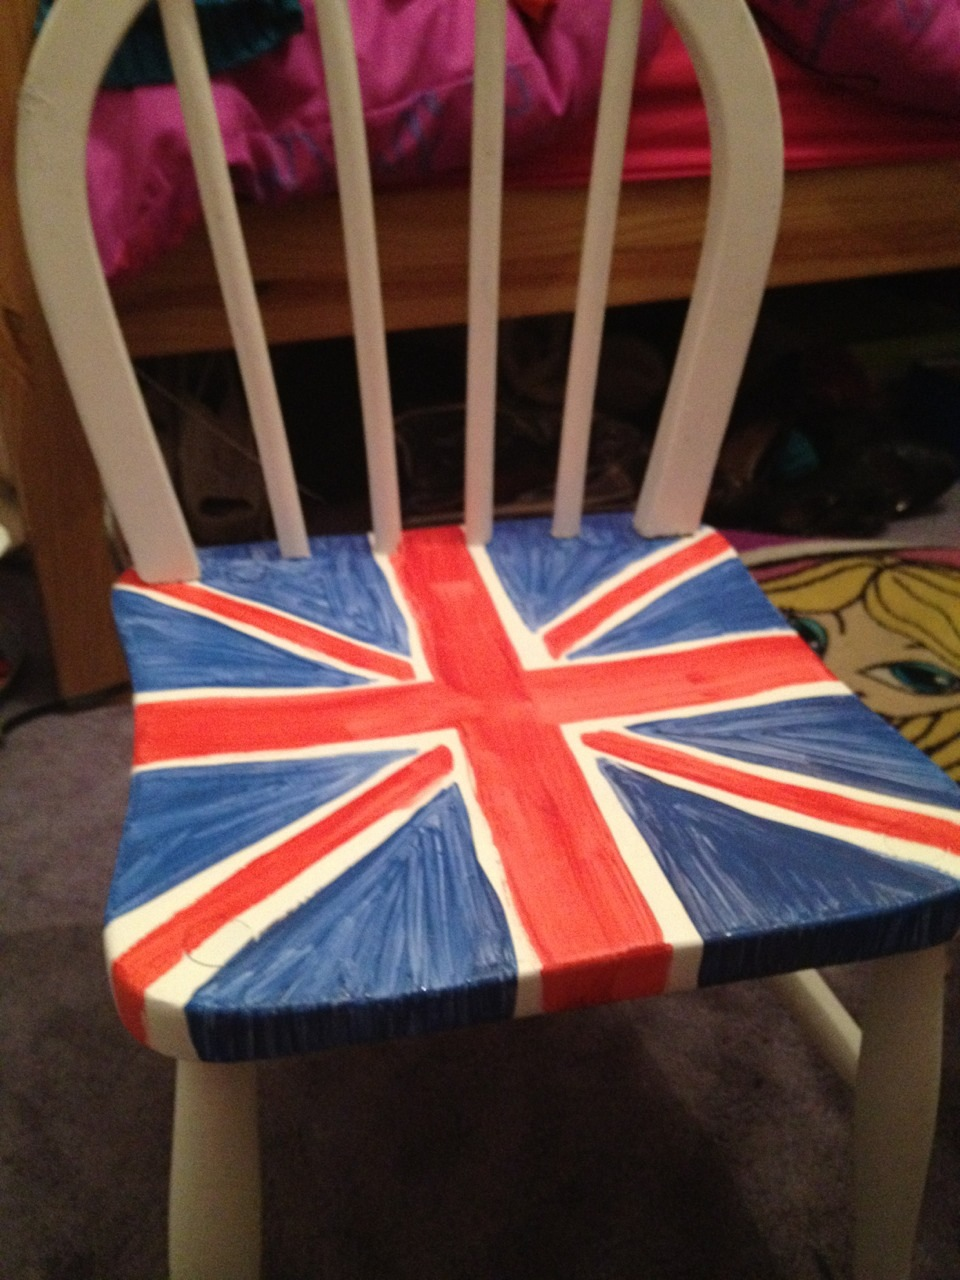 A white wooden chair with the union jack on the seat.